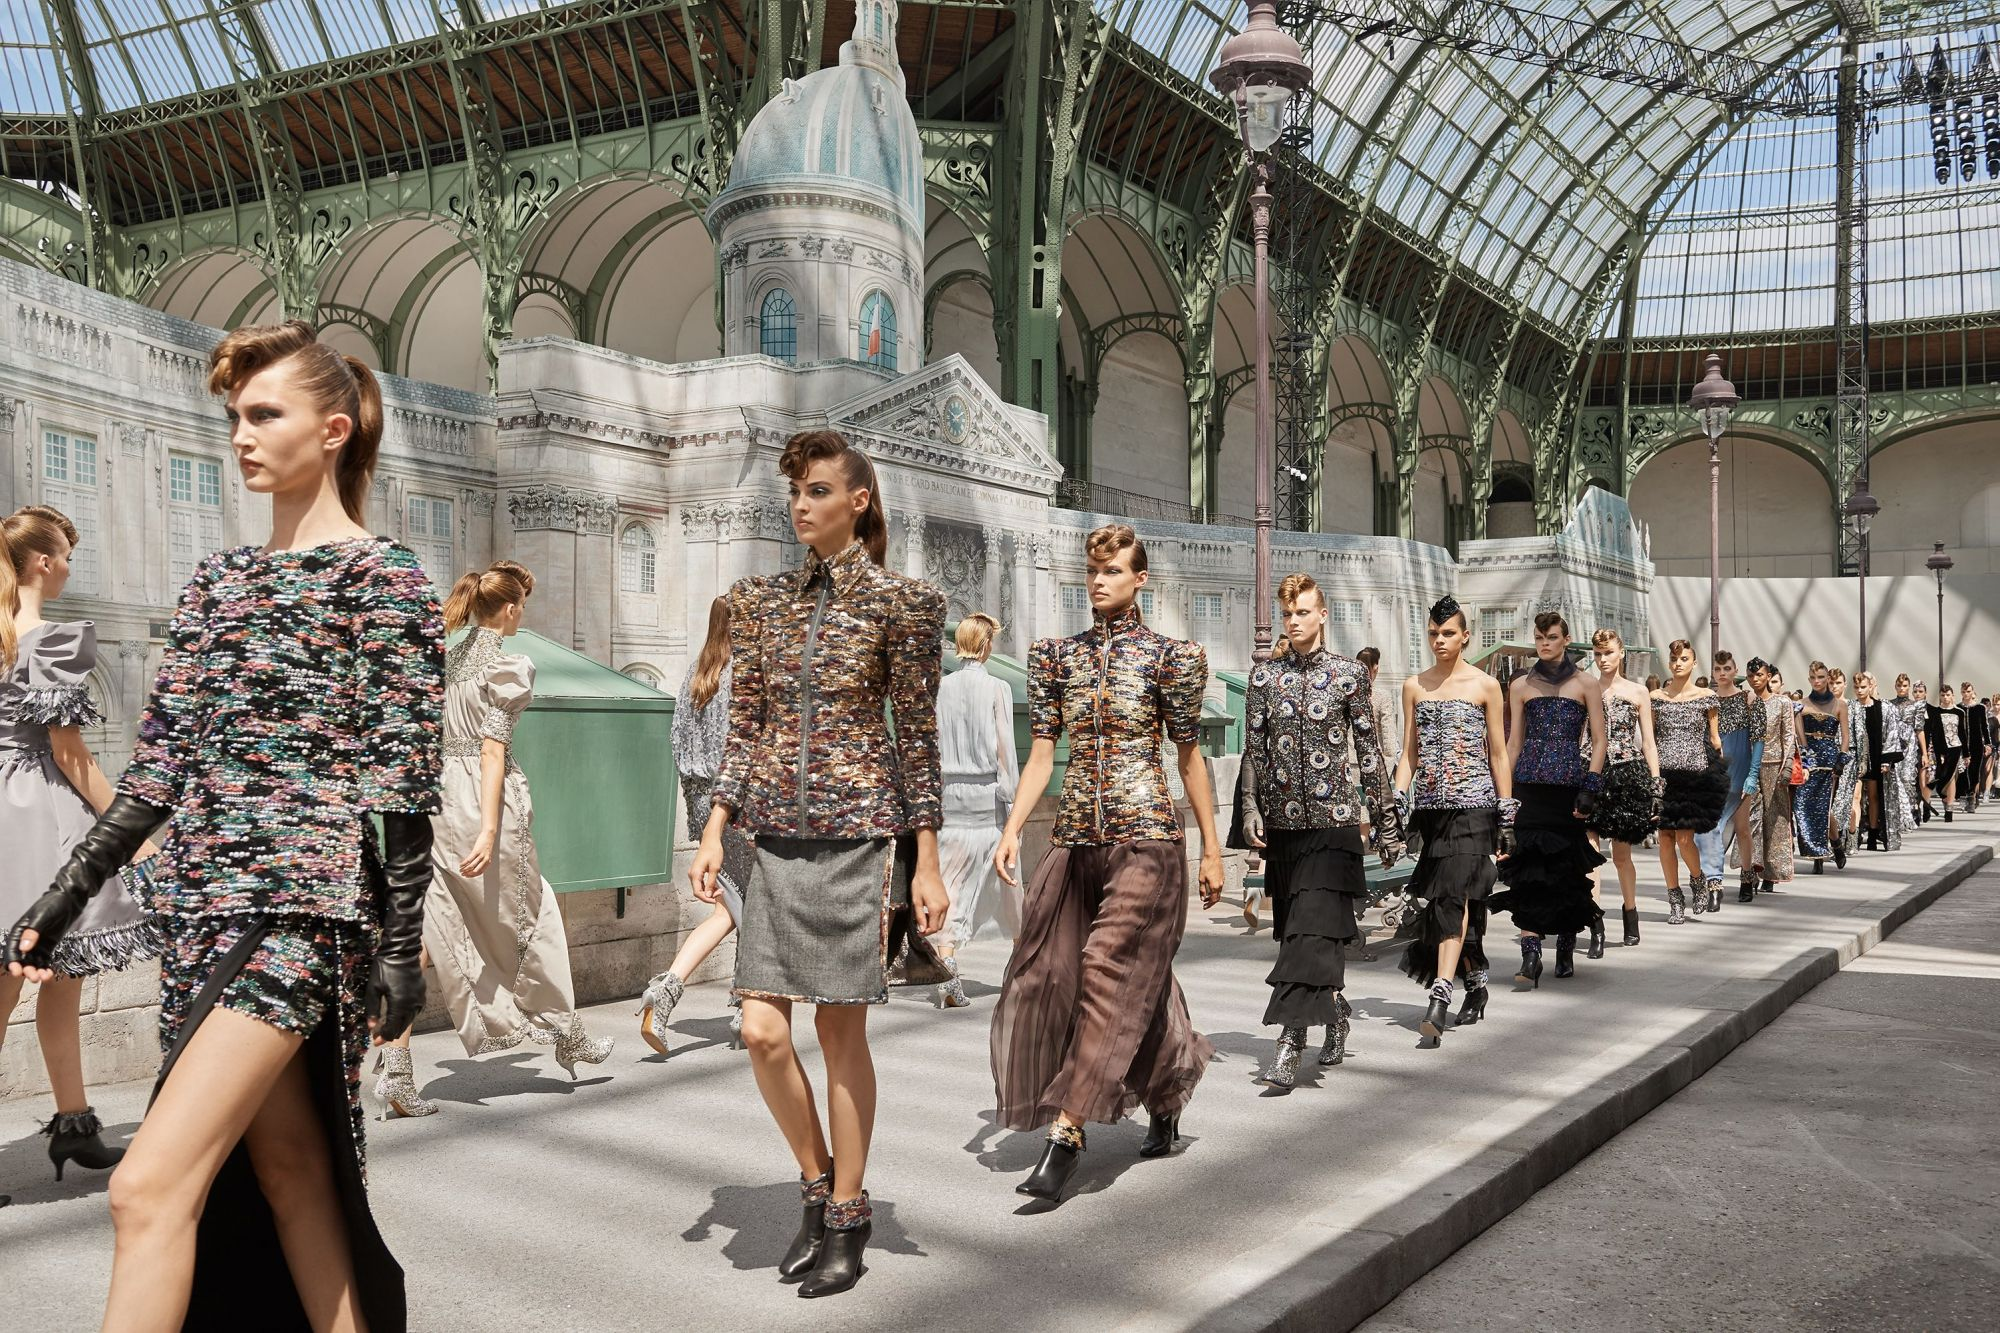 What I Experienced At My First Chanel Haute Couture Show